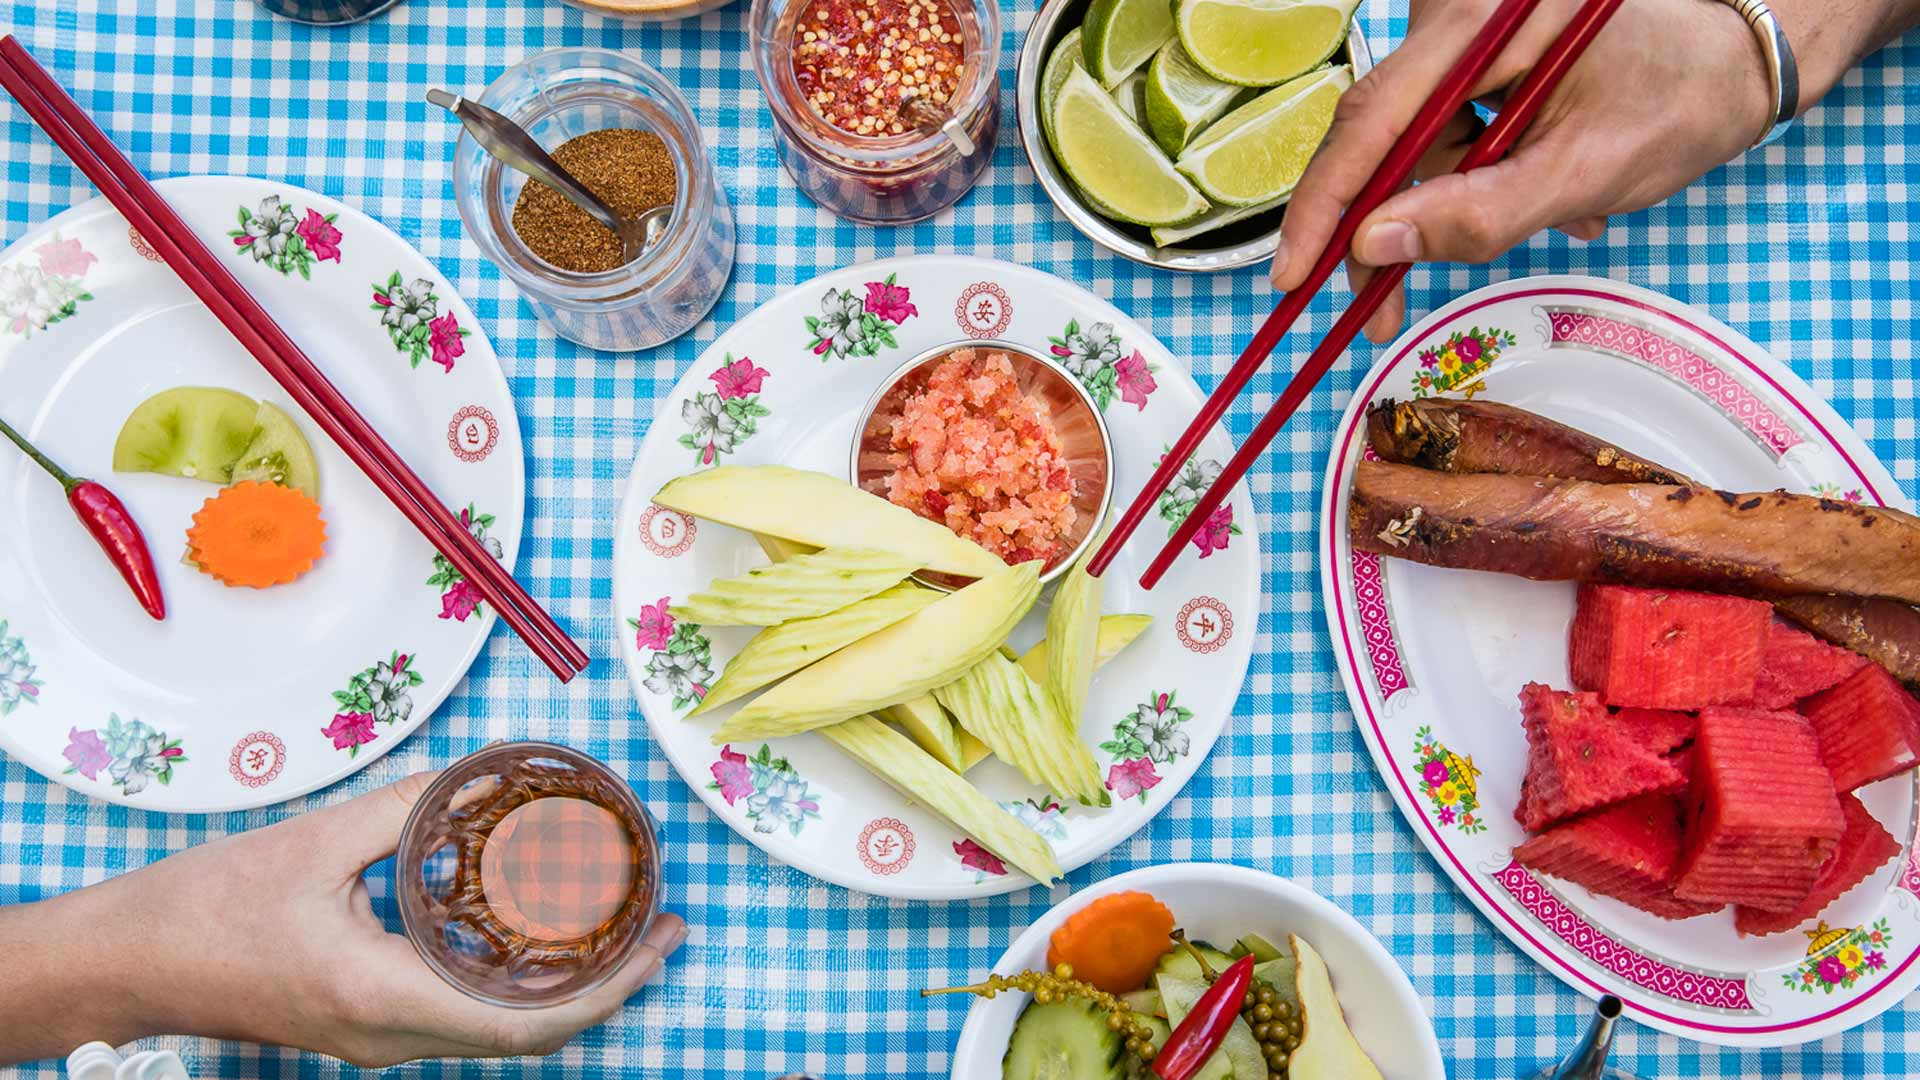 ACME and Merivale's Cambodian Street Food Pop-Up Is Opening This Week